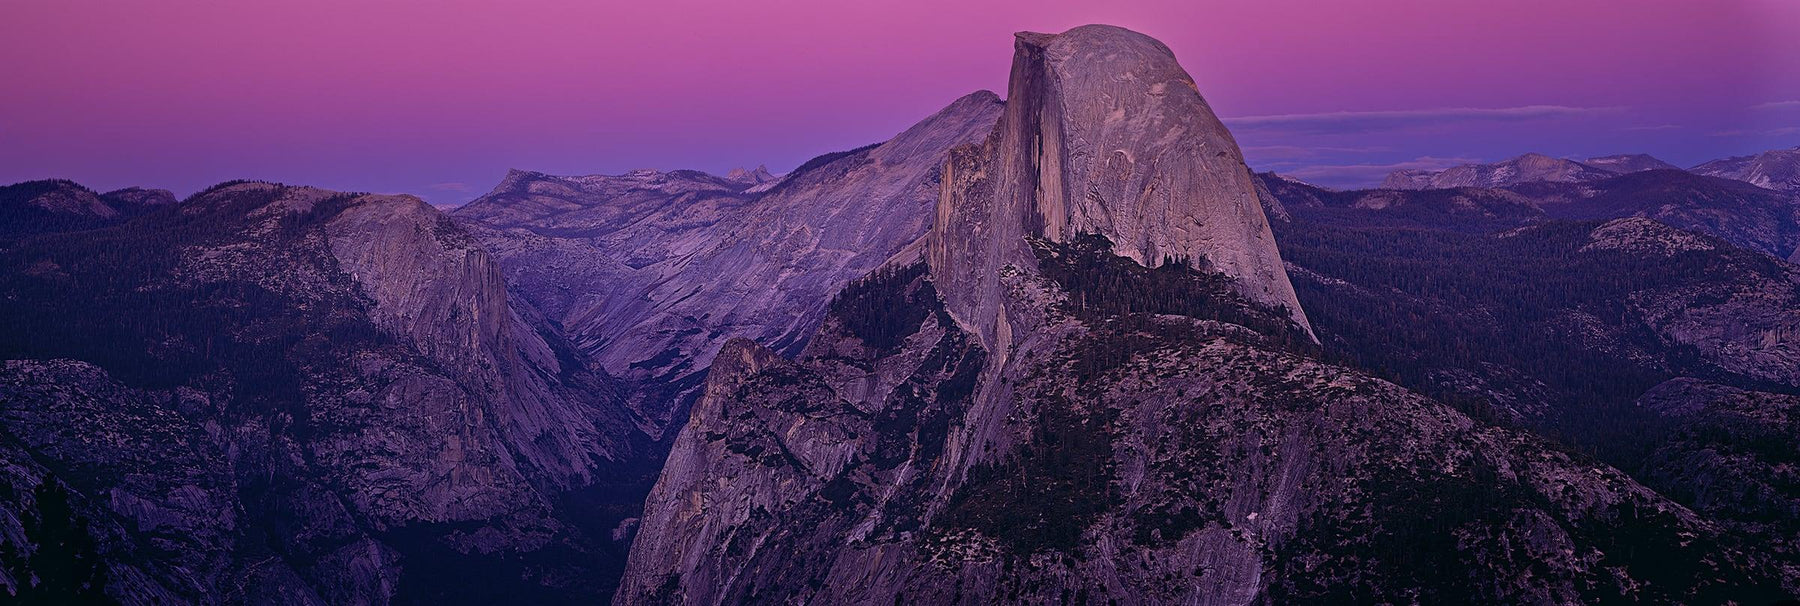 Granite dome rock formation surrounded by the mountains and forest of Yosemite National Park California